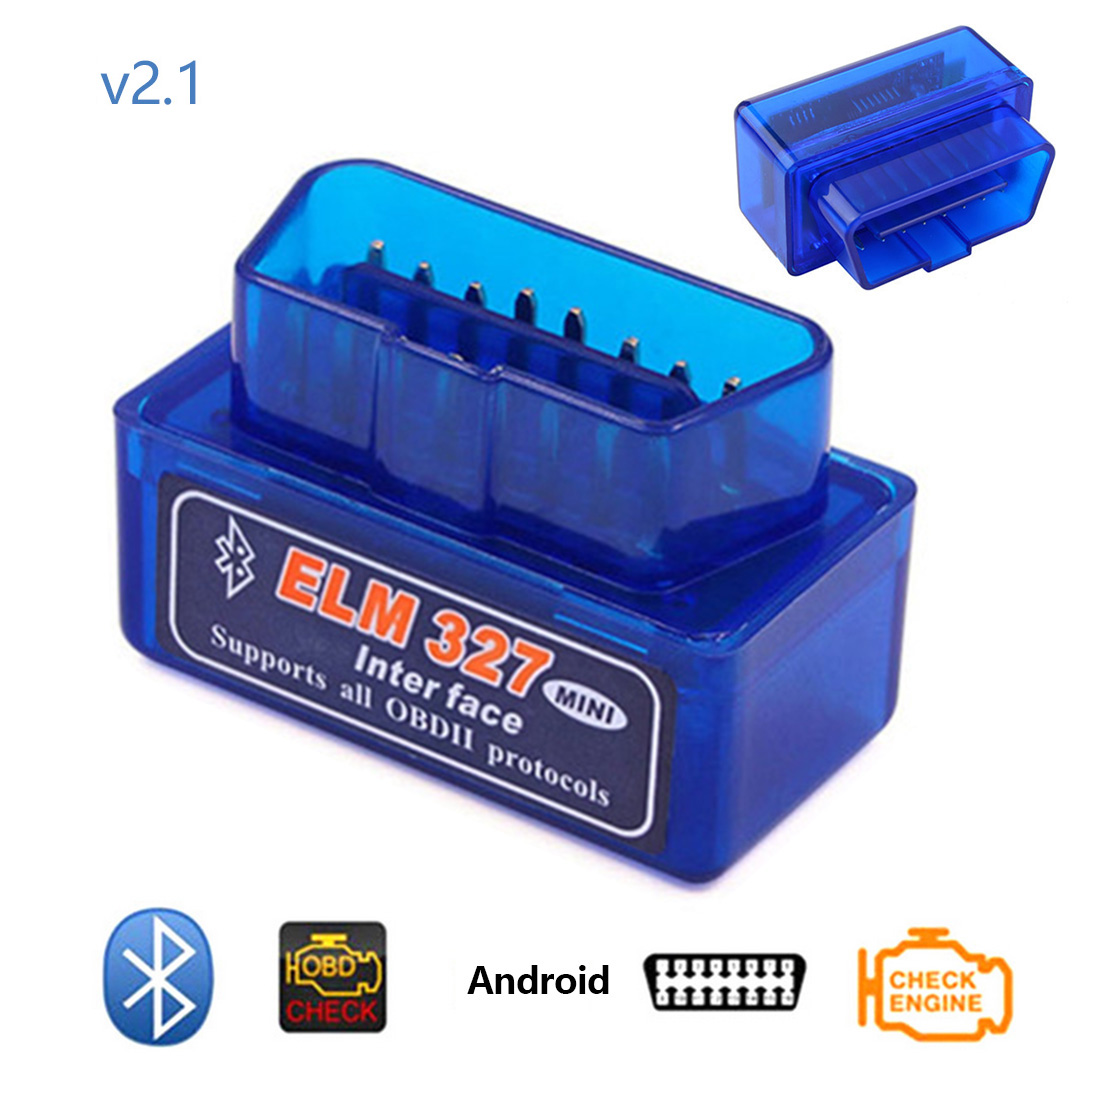 Dewtreetali Auto Diagnose Werkzeug <font><b>ELM327</b></font> <font><b>V2.1</b></font> <font><b>Bluetooth</b></font> 2,0 Interface OBD2 <font><b>Mini</b></font> ULME 327 für Android Drehmoment/PC <font><b>v2.1</b></font> BT adapter image